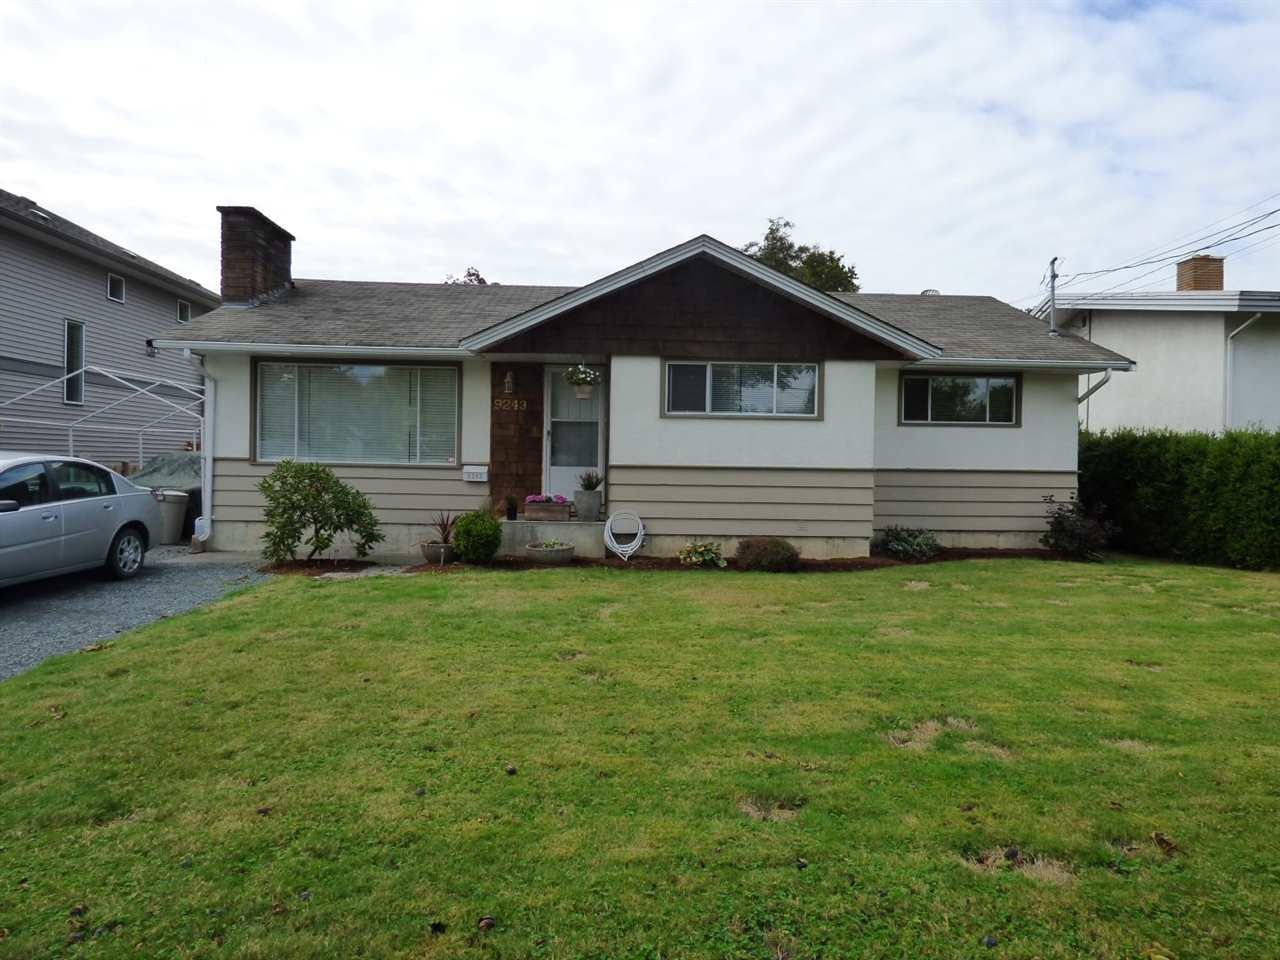 Main Photo: 9243 MCNAUGHT Road in Chilliwack: Chilliwack E Young-Yale House for sale : MLS(r) # R2111829